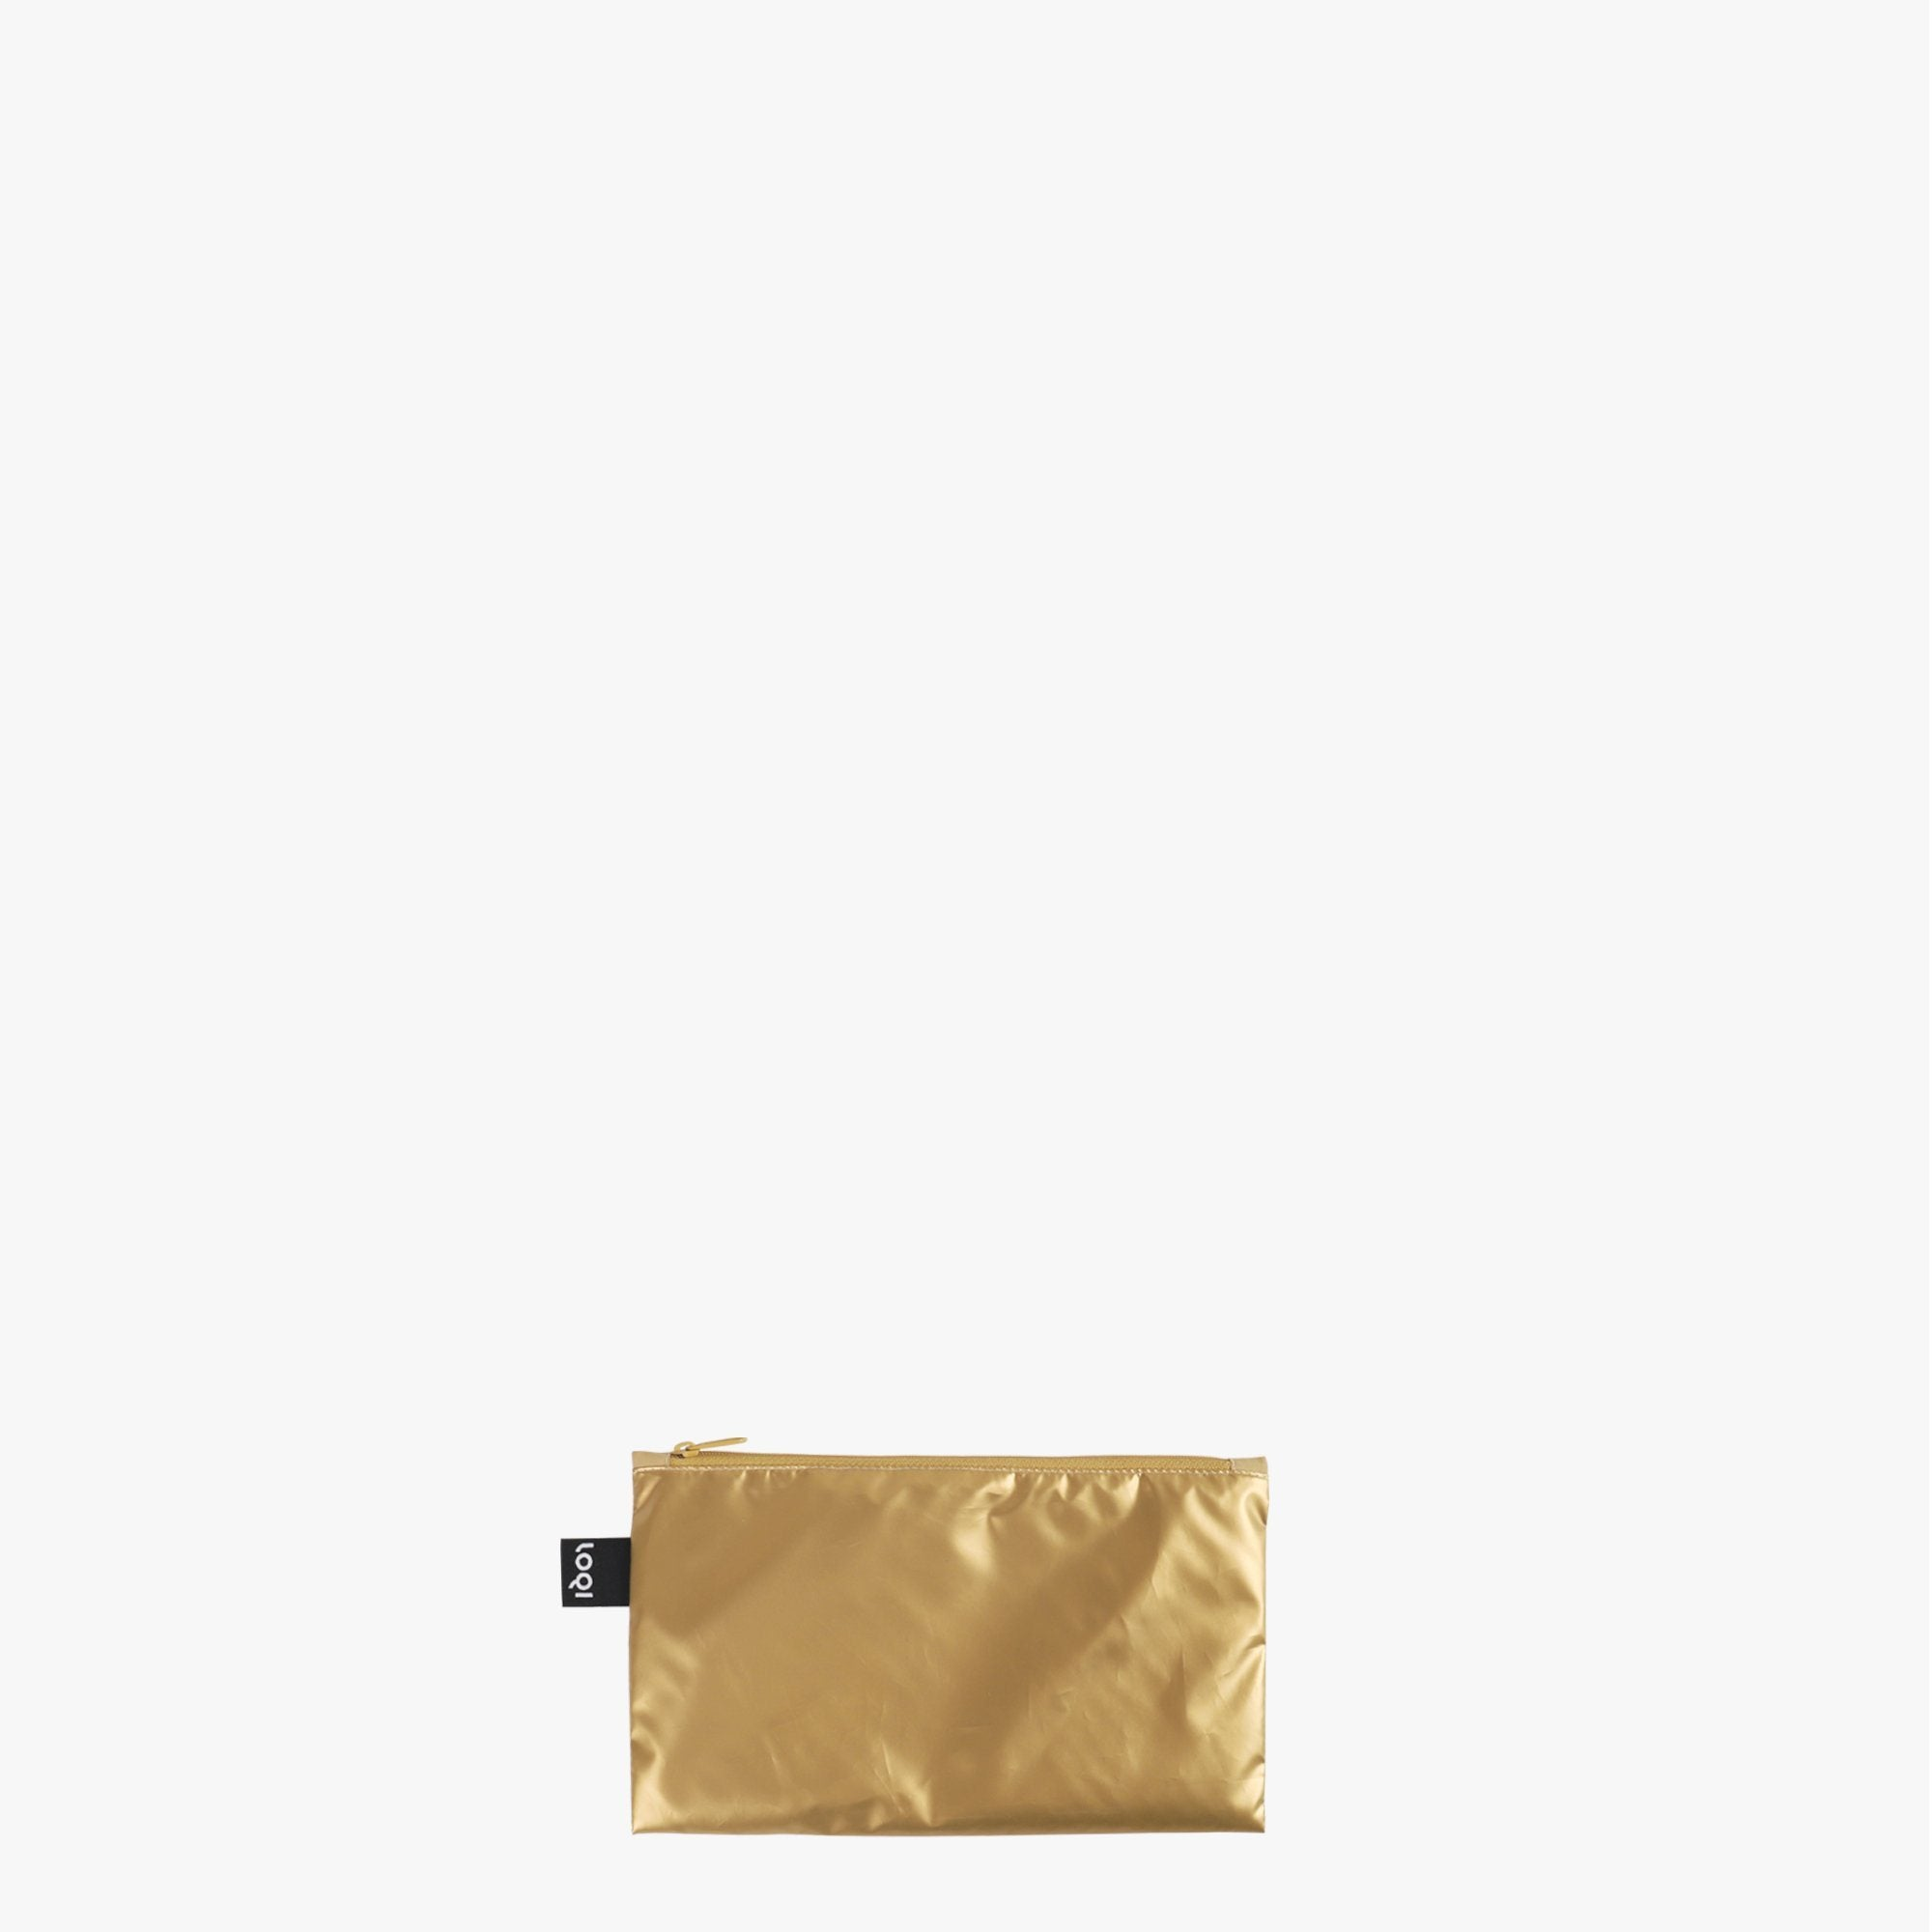 metallics  gold siilver rose gold zip pockets set 3d RGB